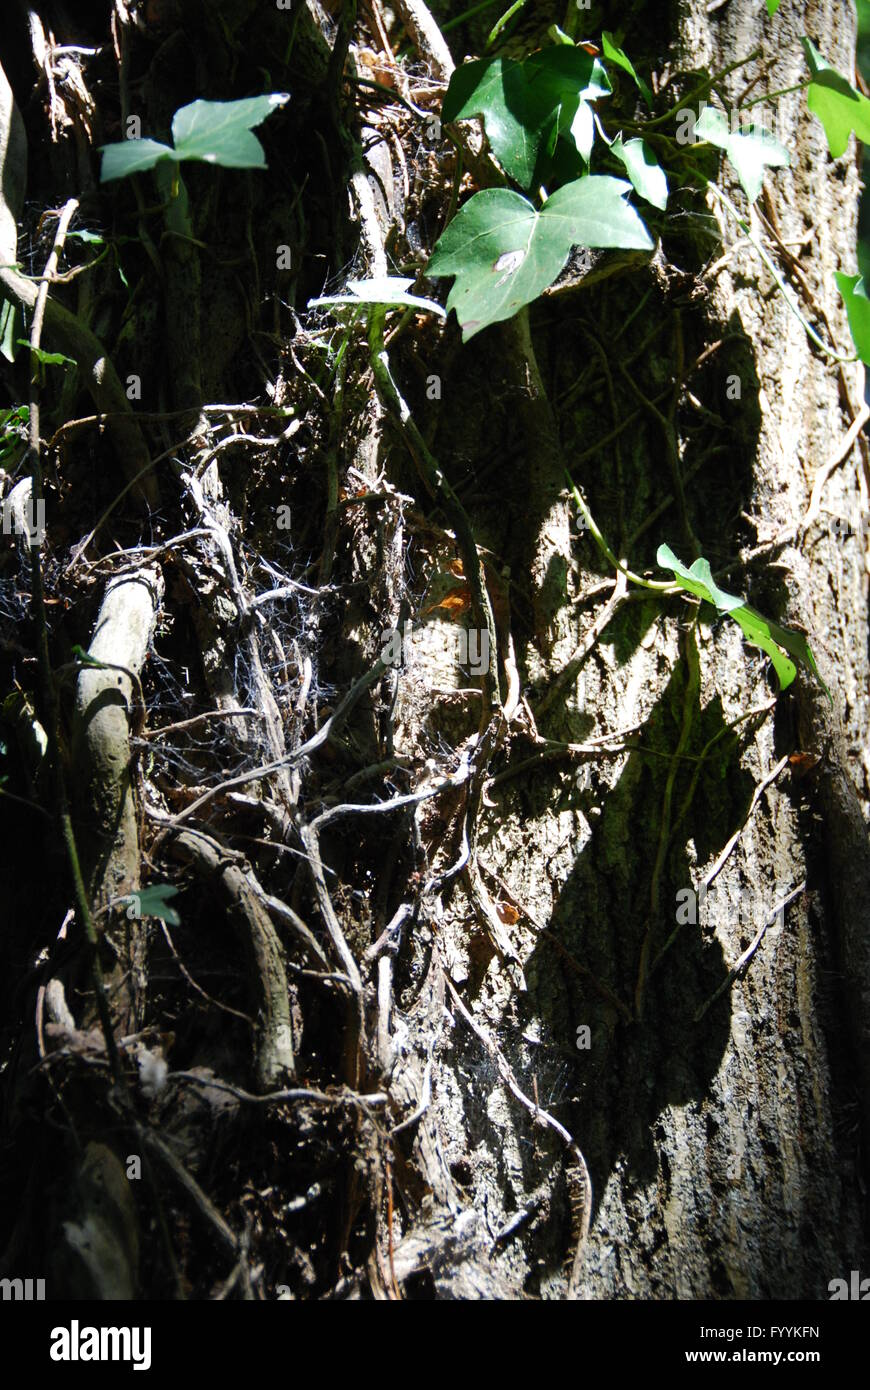 Ivy on tree Meon Valley trail near Hampshire southern England - Stock Image